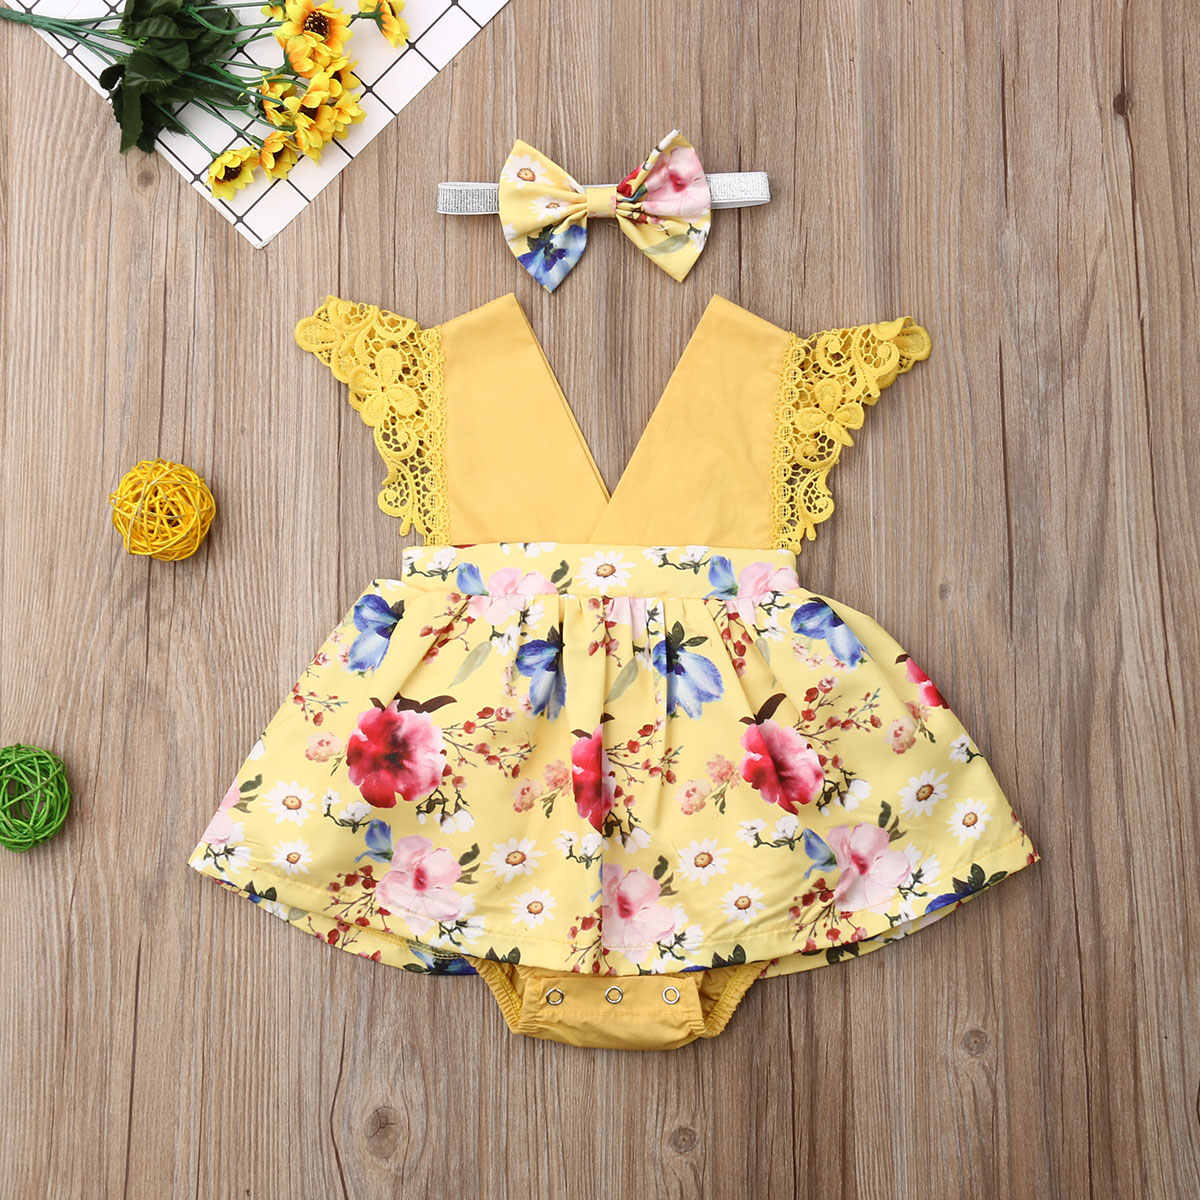 Pudcoco Newborn Baby Girl Clothes Lace Fly Sleeveless Flowr Print Romper Dress Headband 2Pcs Outfits Clothes Summer